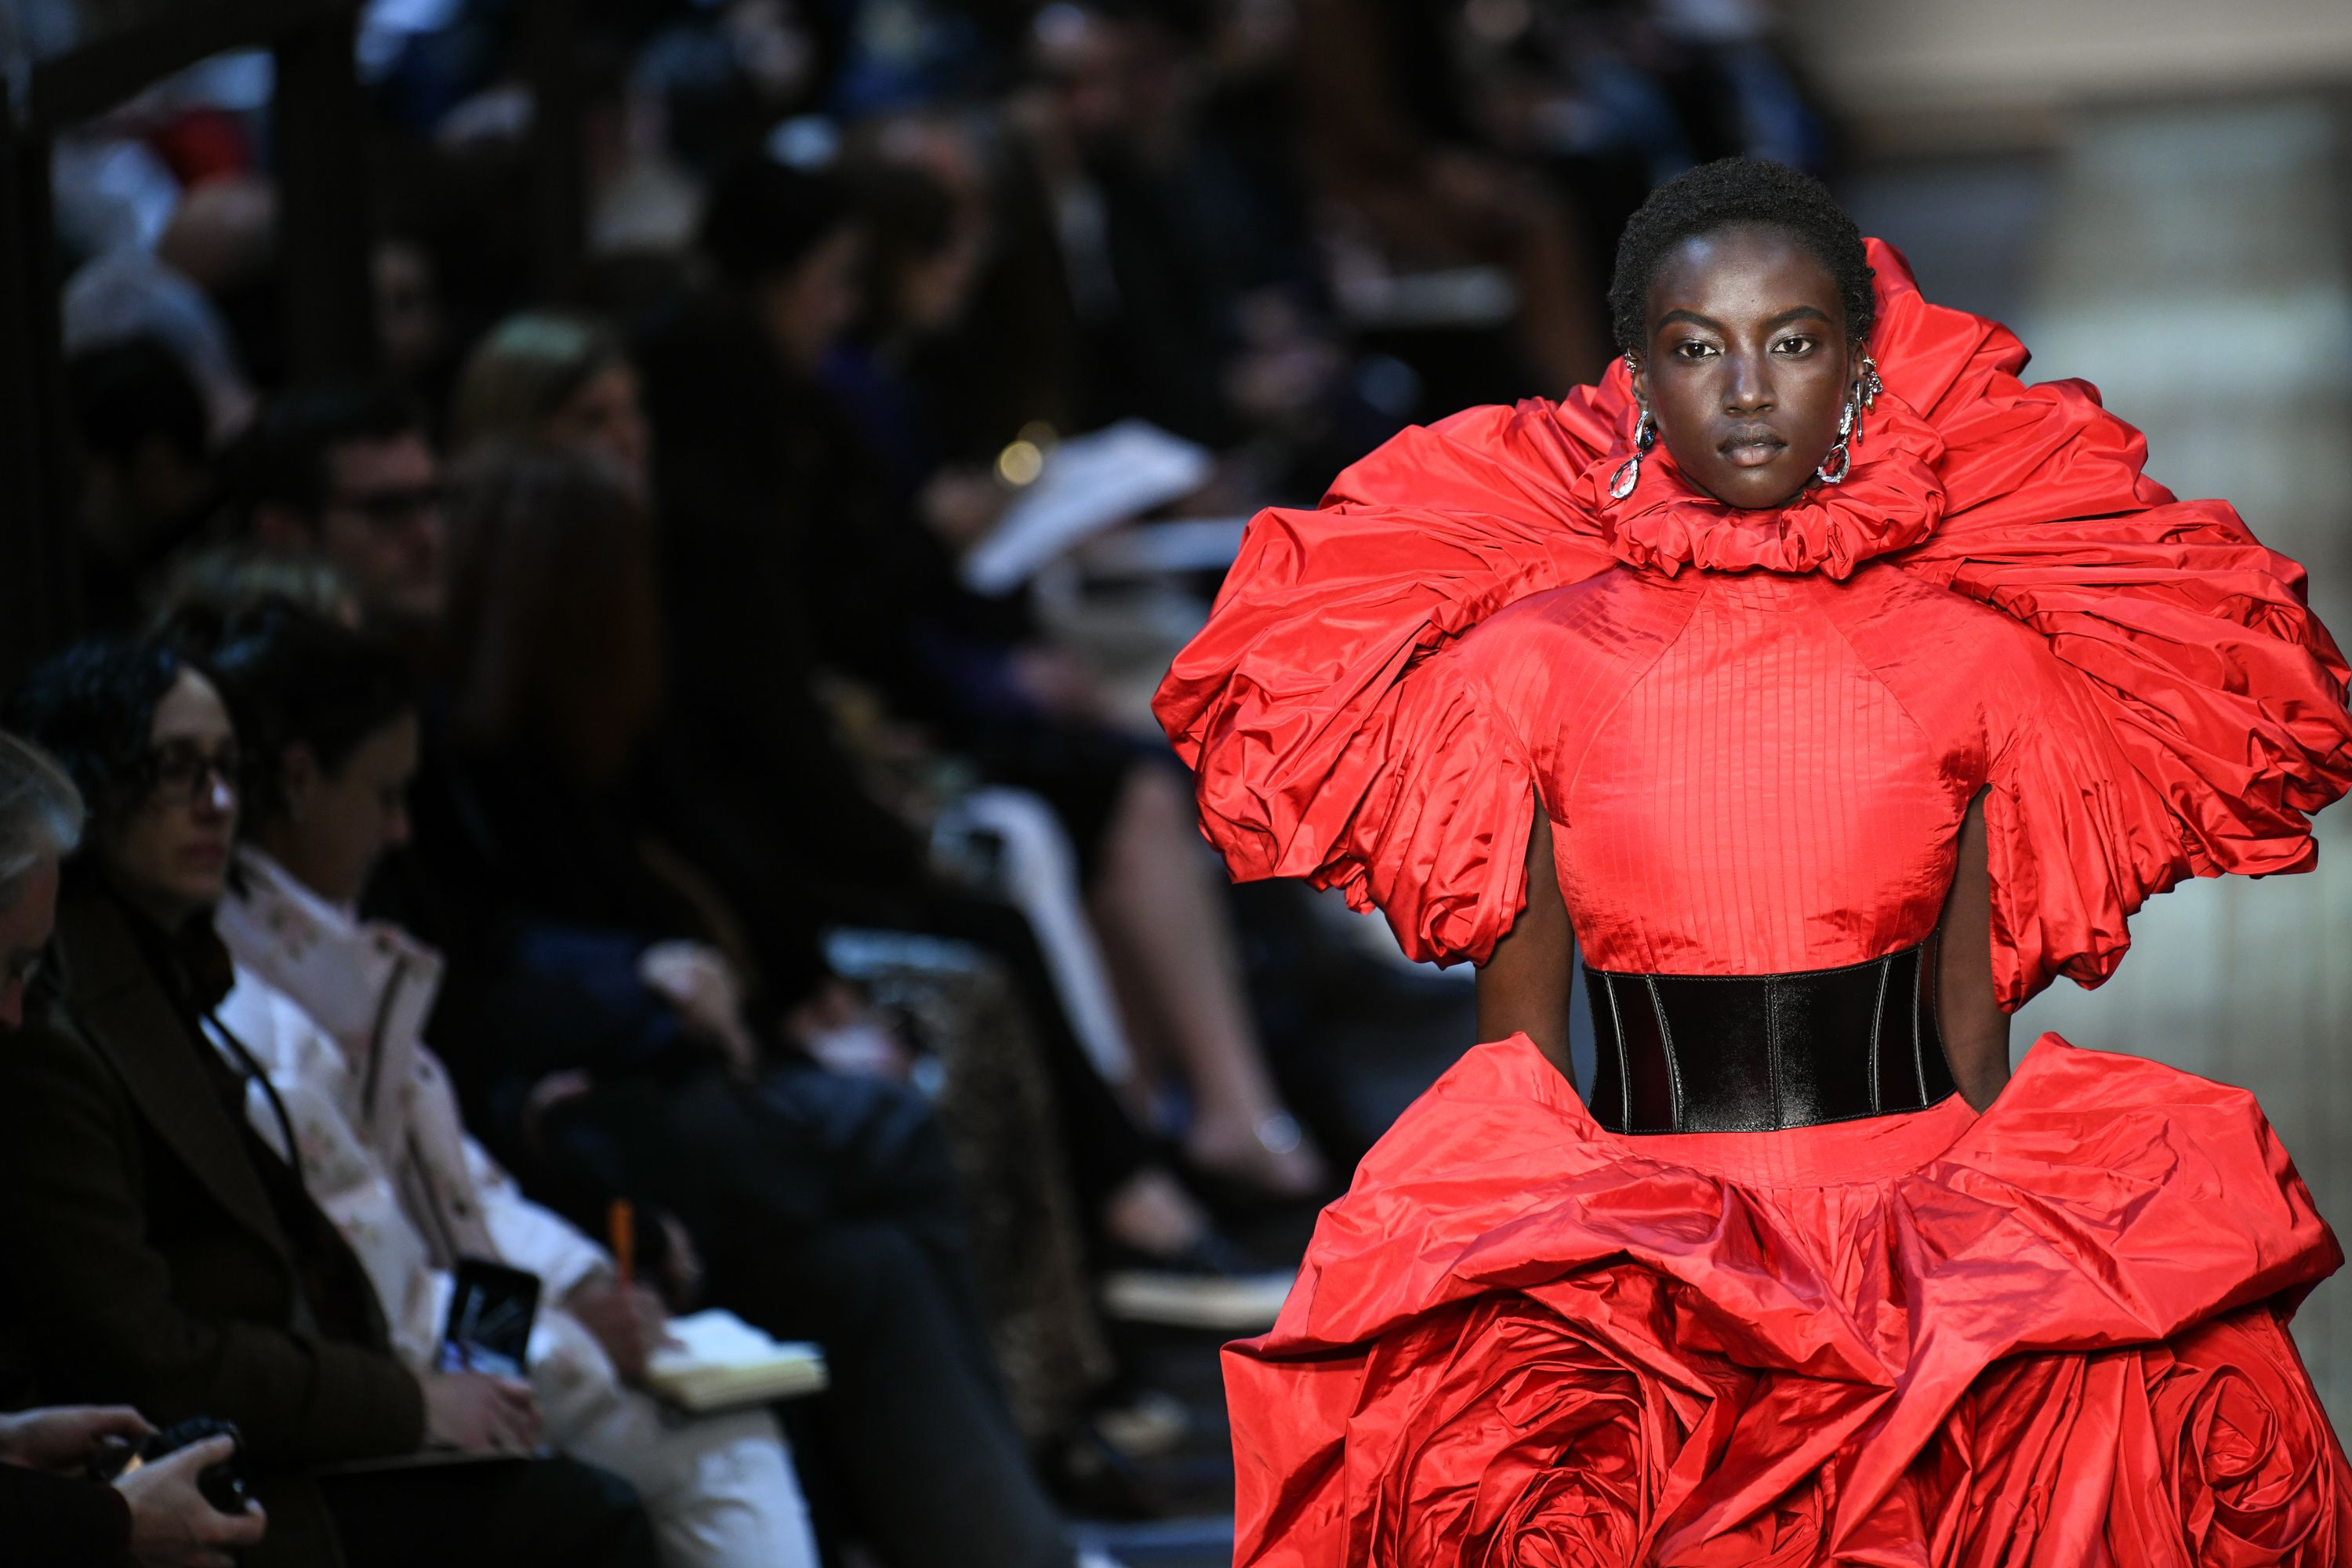 644d474acc8be All the Exquisite Details at Alexander McQueen's Fall 2019 Show